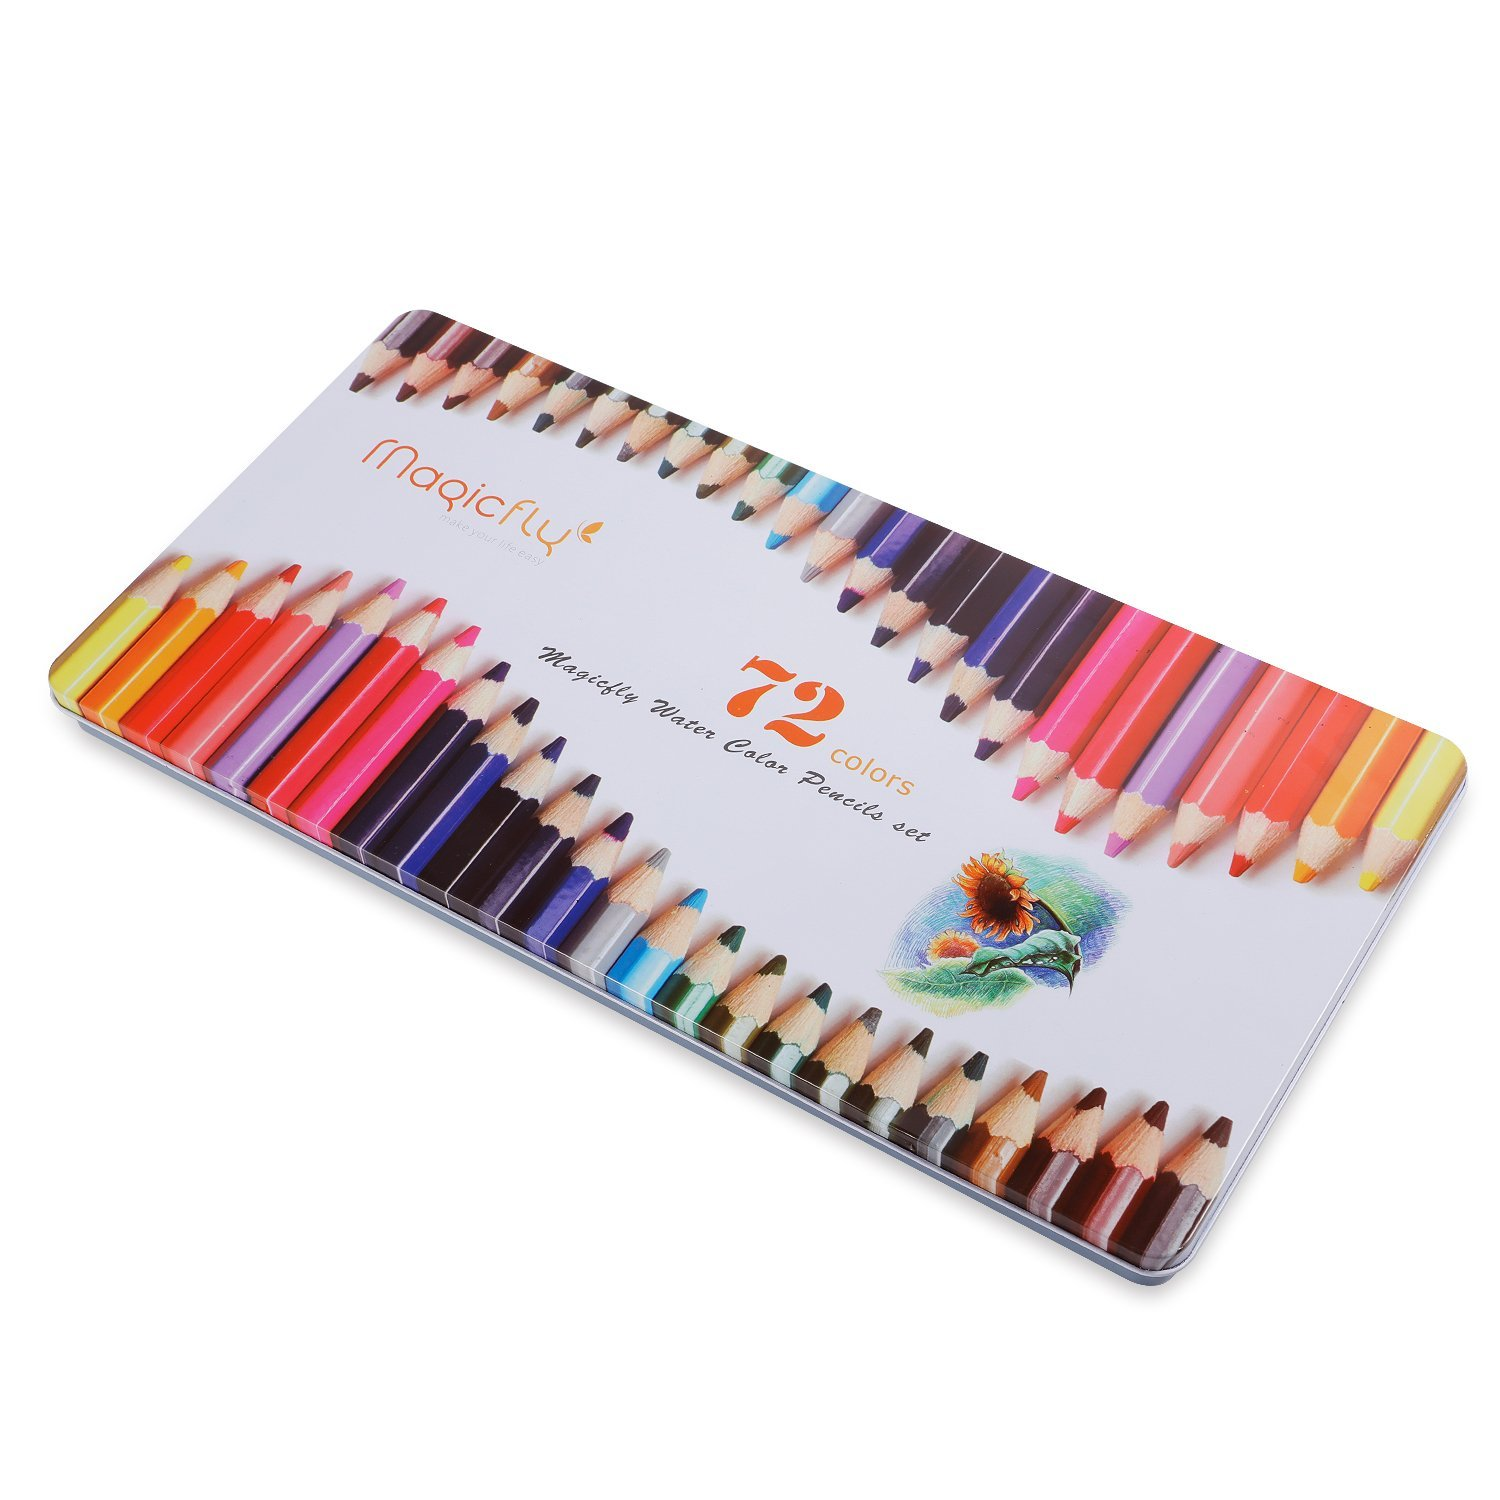 Magicfly 72 Colored Pencils Set Premier Soft Core Watercolor Pencils with 2 Brushes and Metal Tin Case, Bonus Pencil Sharper by Magicfly (Image #7)